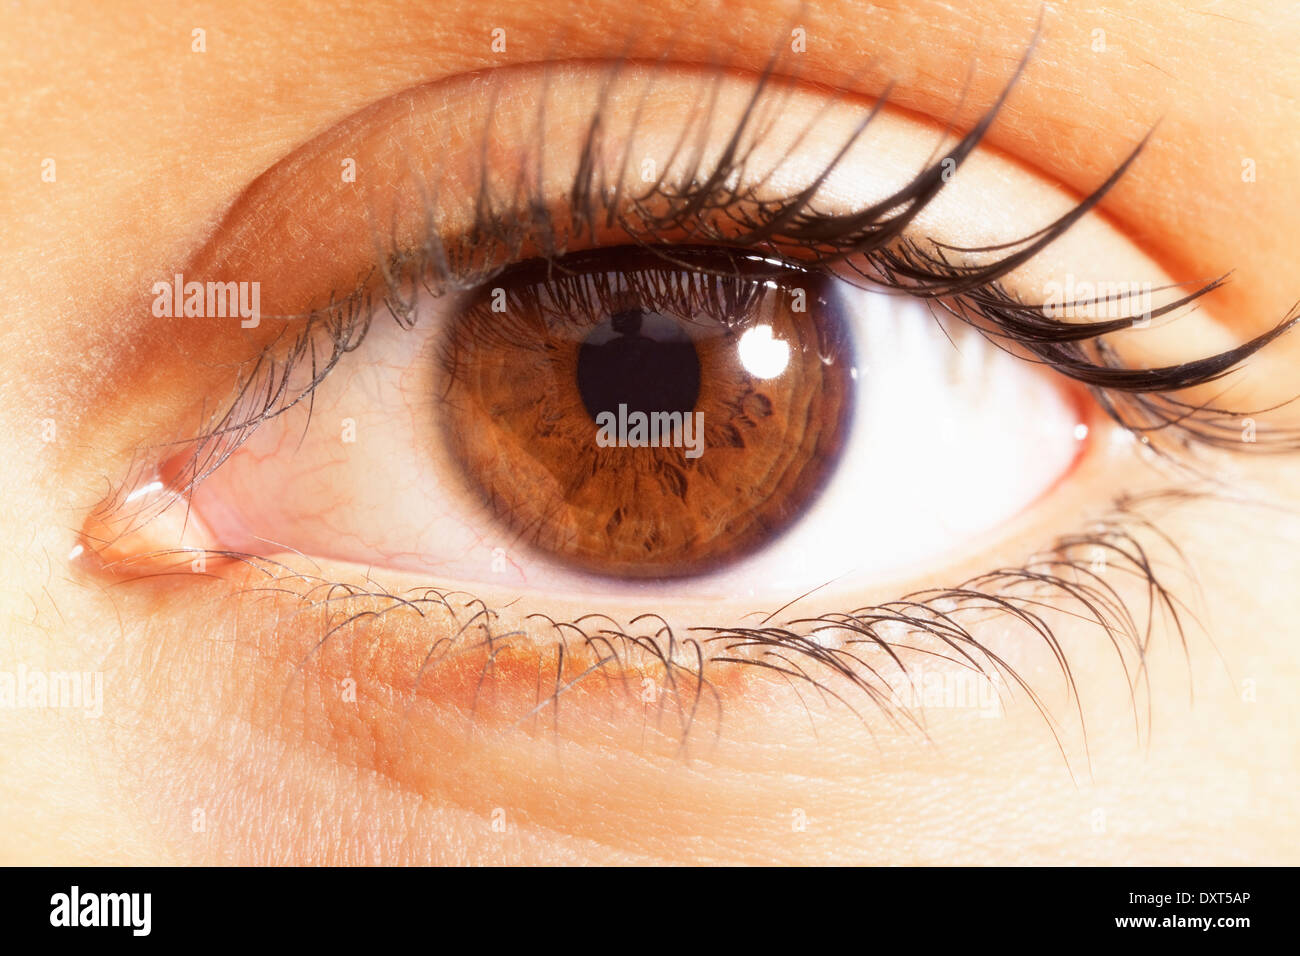 Extreme close up of brown eyes - Stock Image